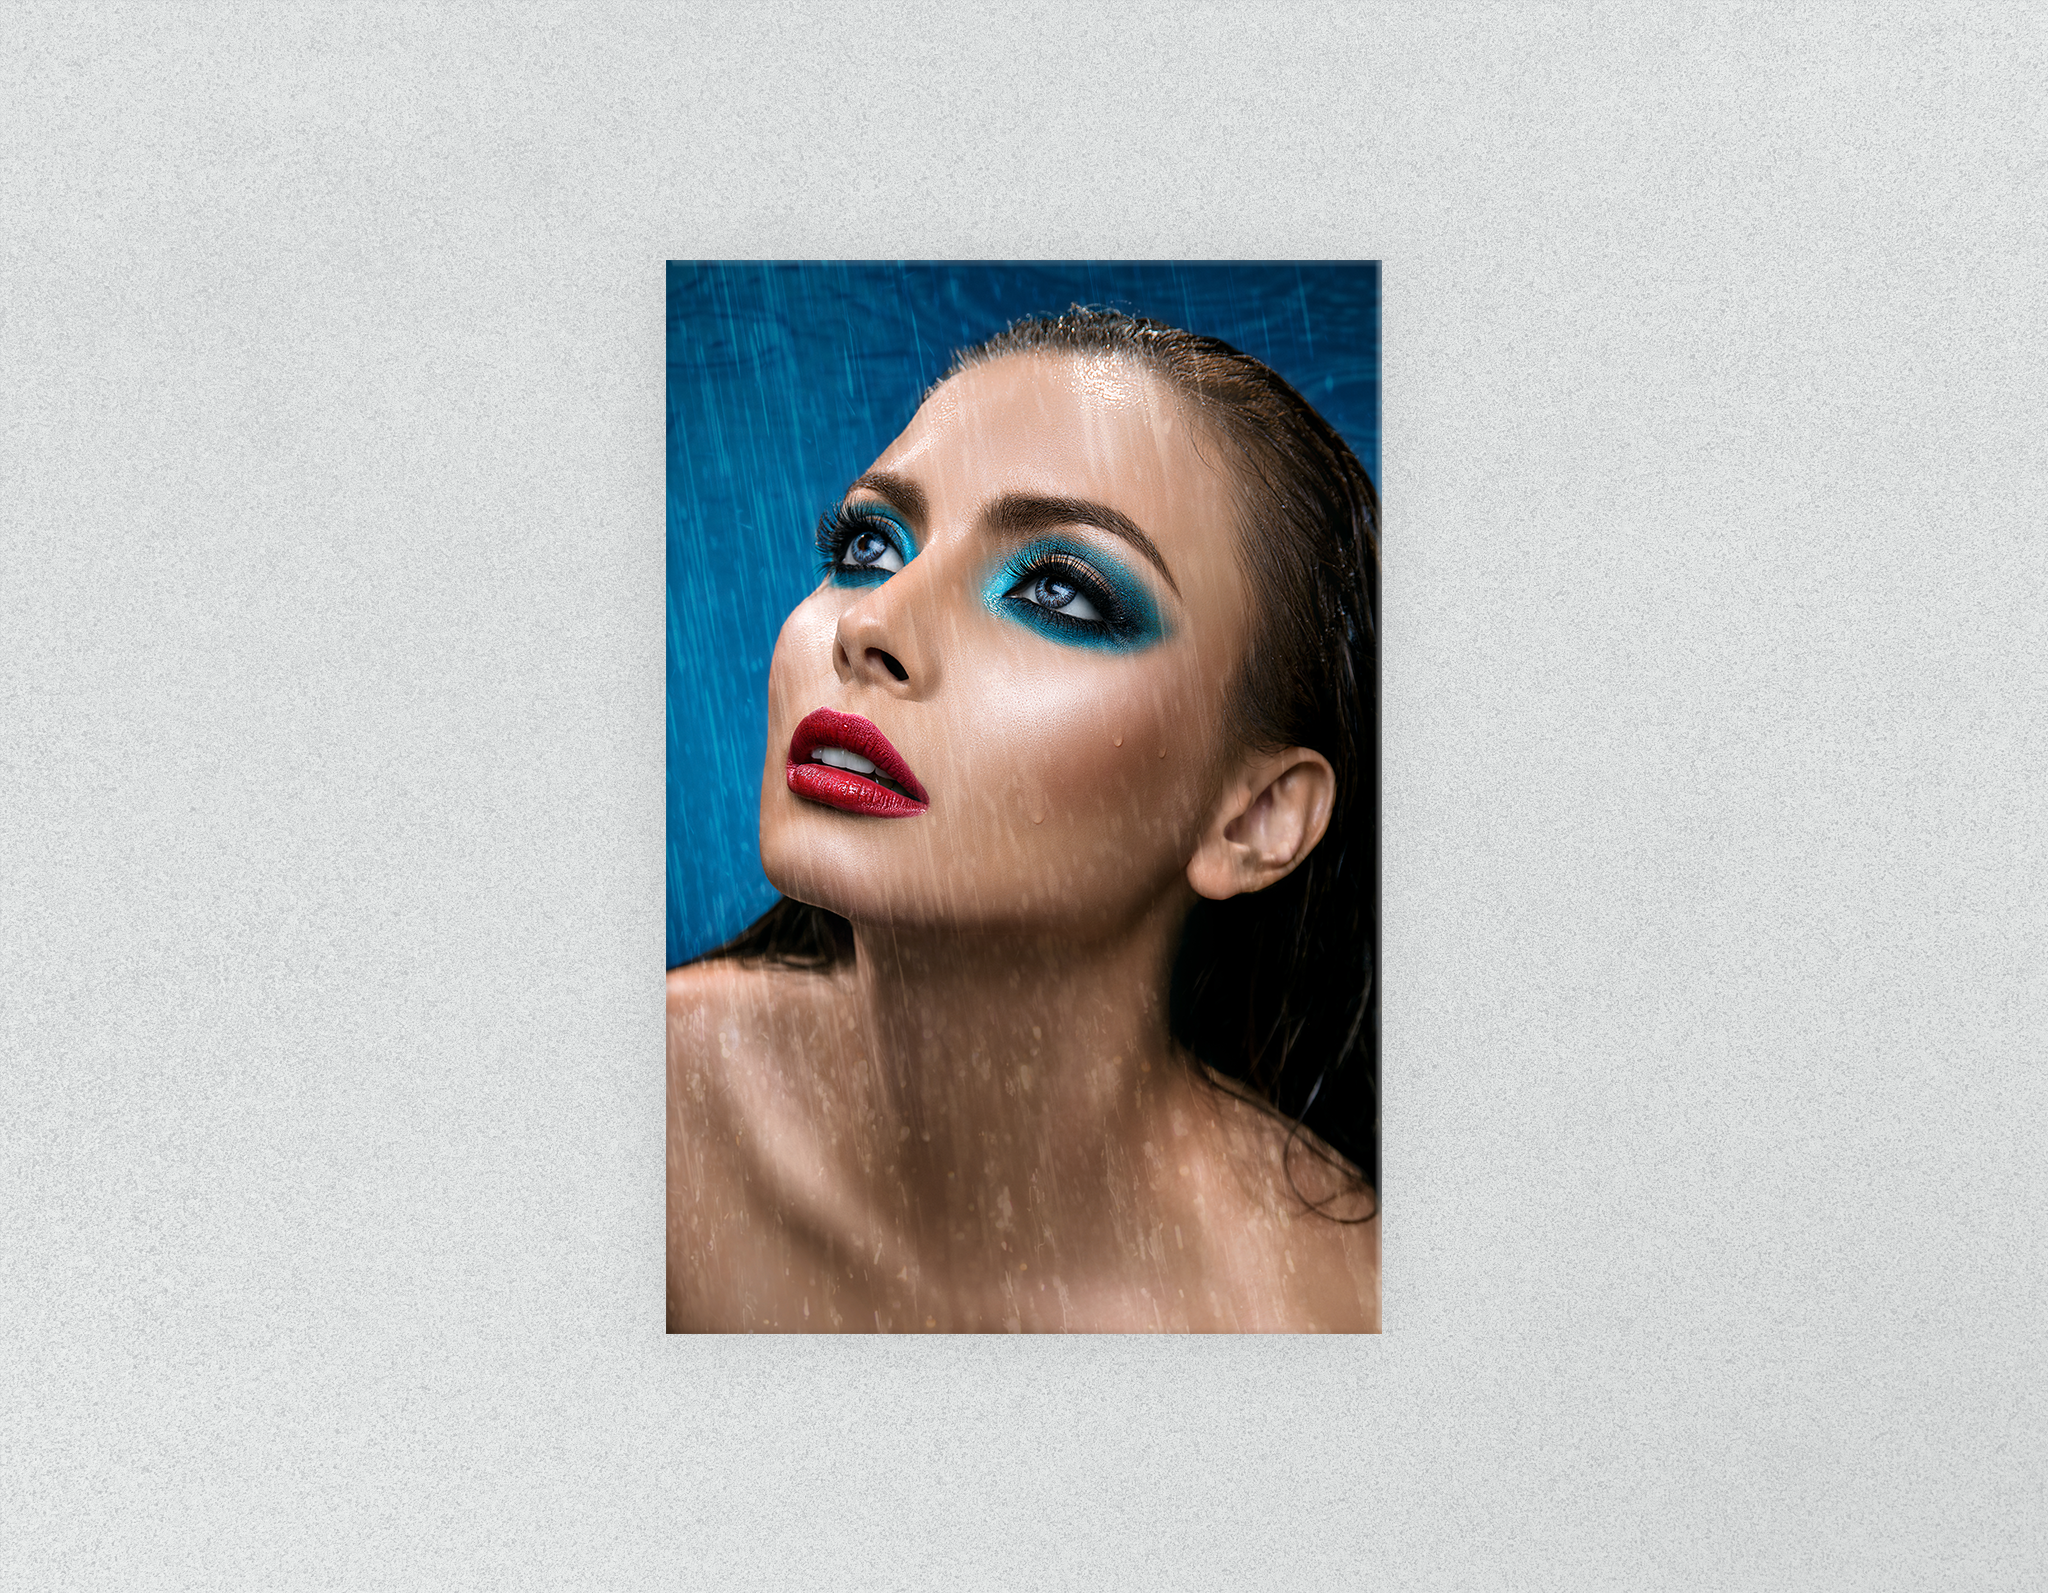 Plastic Salon Posters & Salon Posters: Woman in Bright Blue Eyeshadow in the Rain